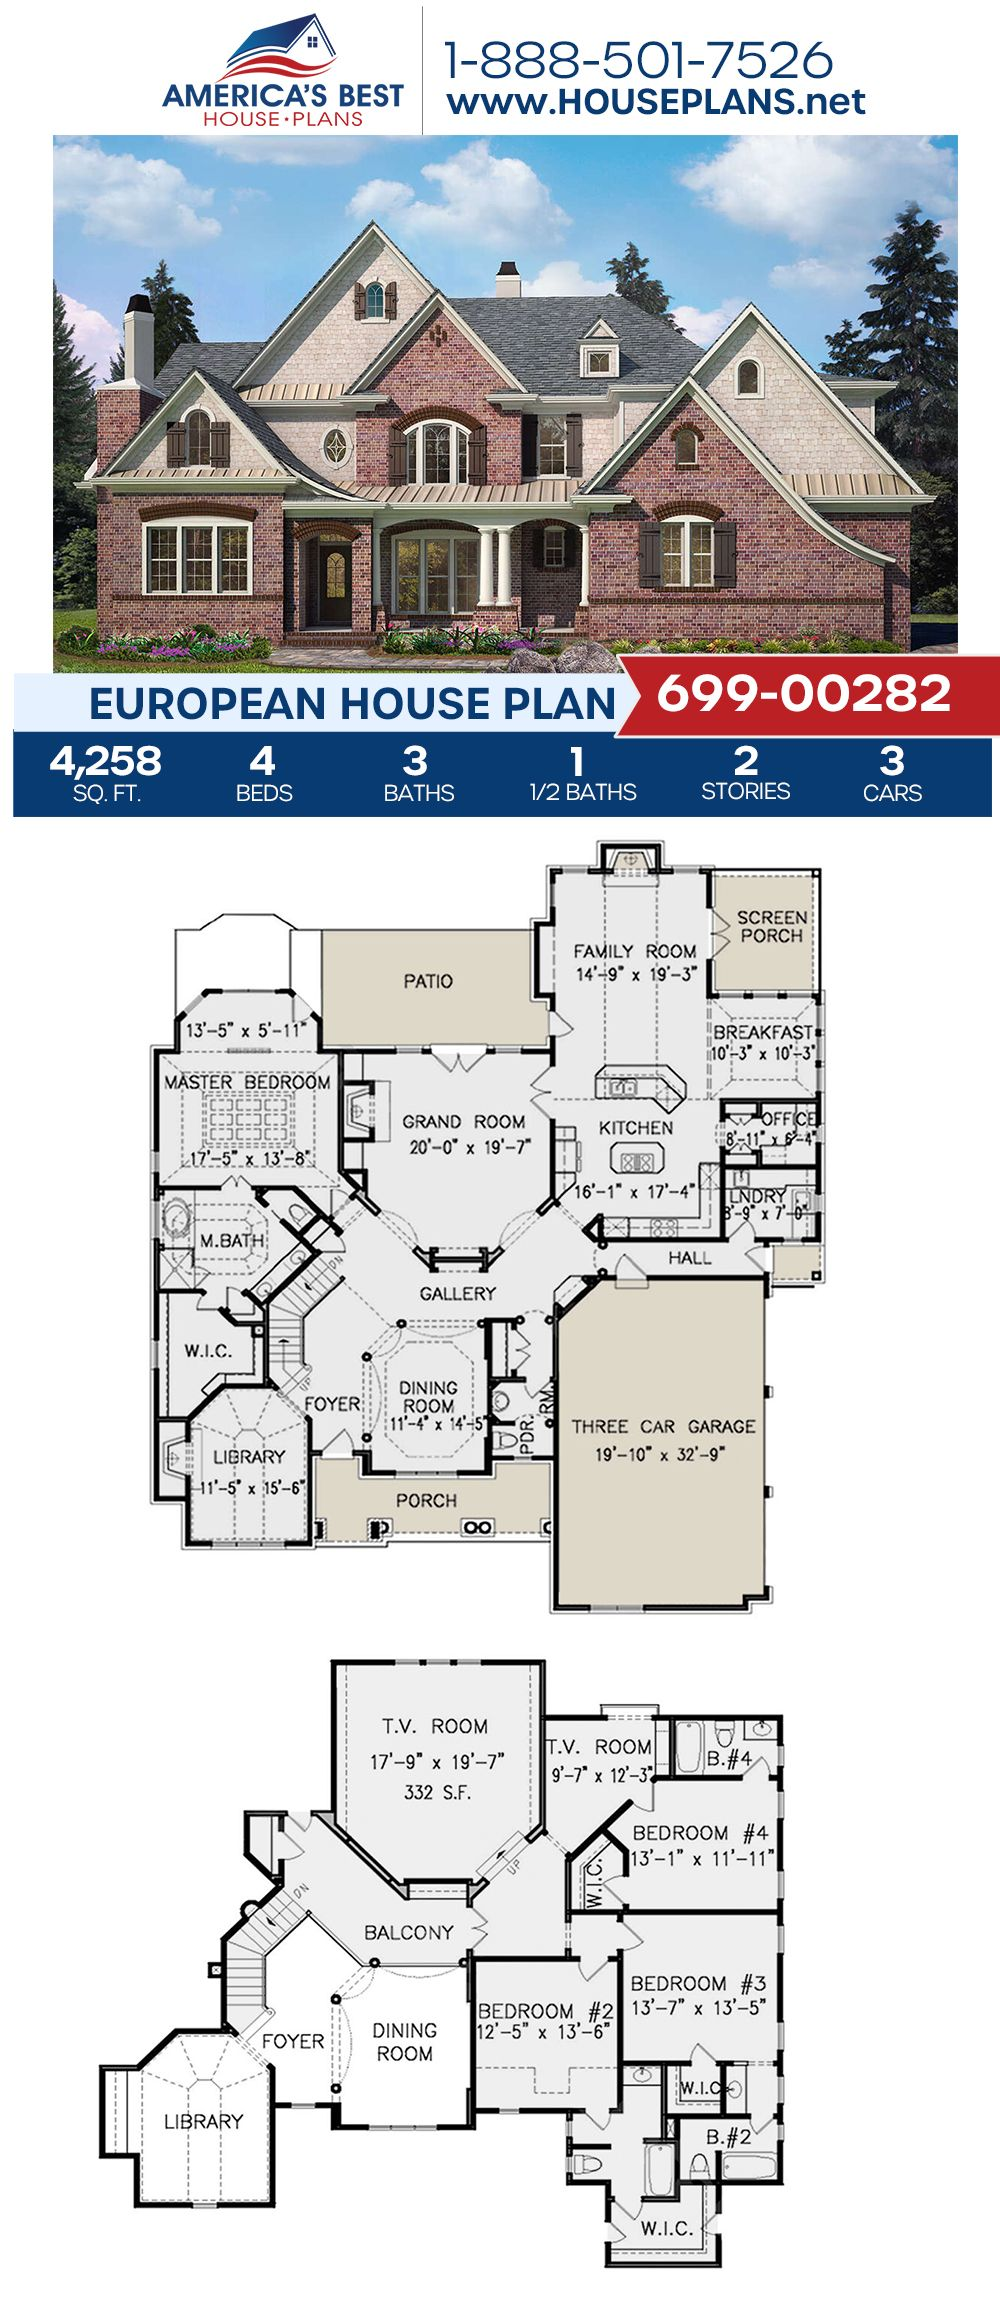 House Plan 699 00282 European Plan 4 258 Square Feet 4 Bedrooms 3 5 Bathrooms Porch House Plans Affordable House Plans European House